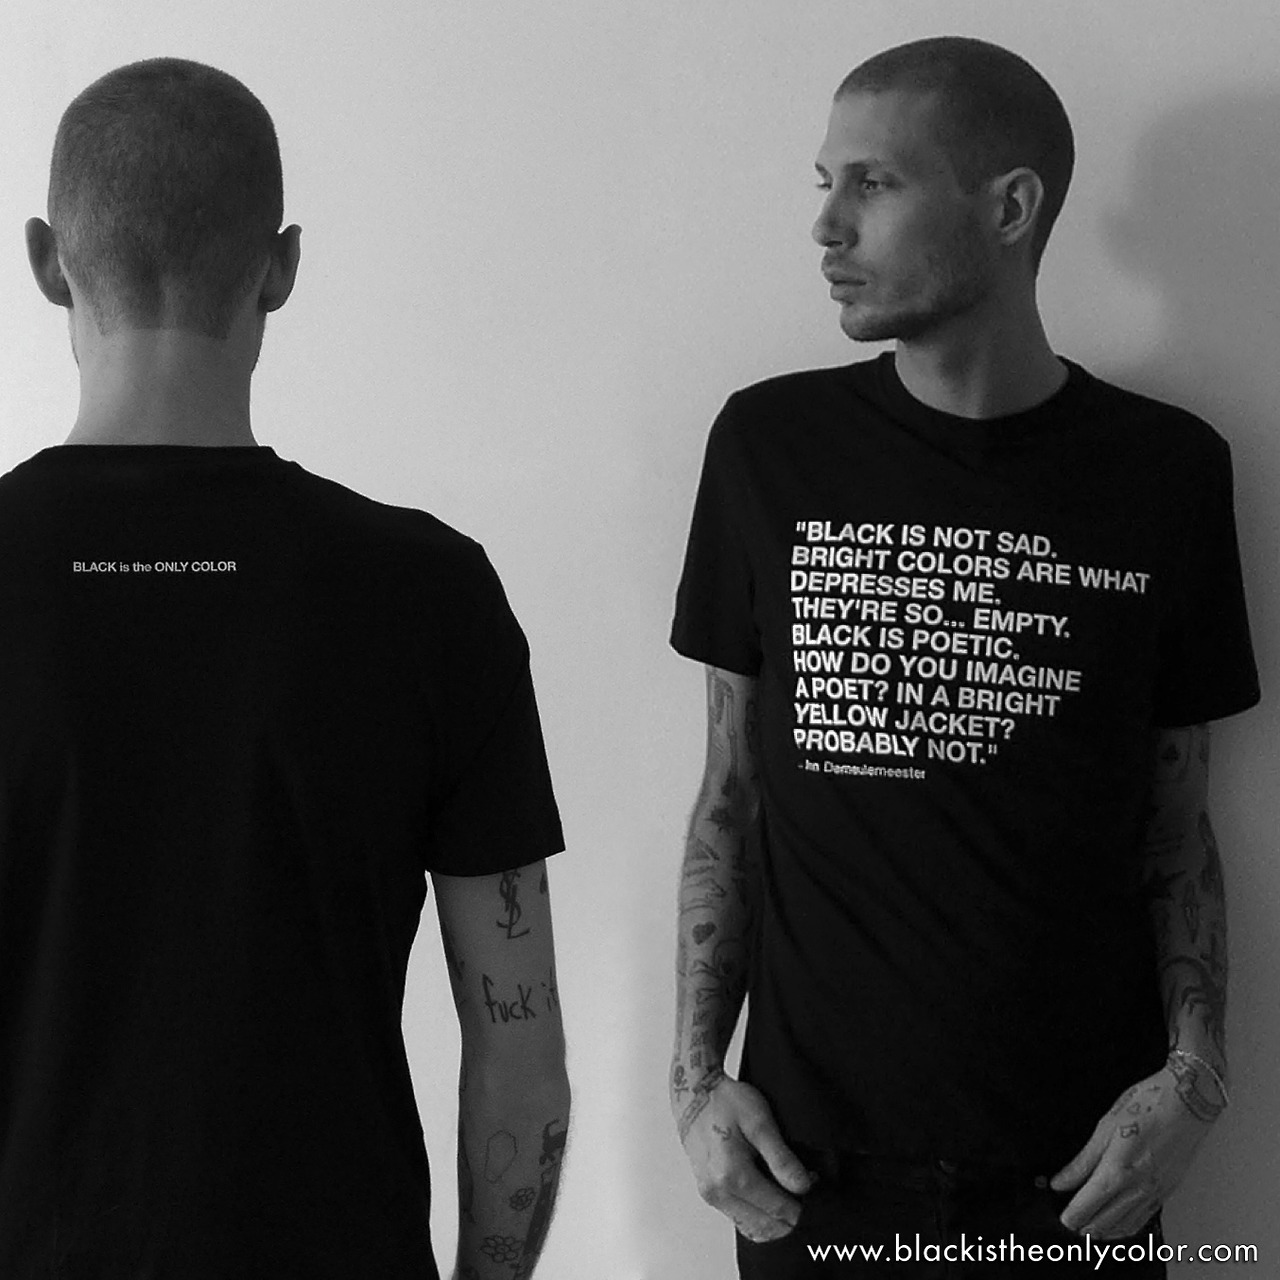 Black is the only color | THE FIRST BLACKistheONLYCOLOR T-SHIRT WILL BE FOR...